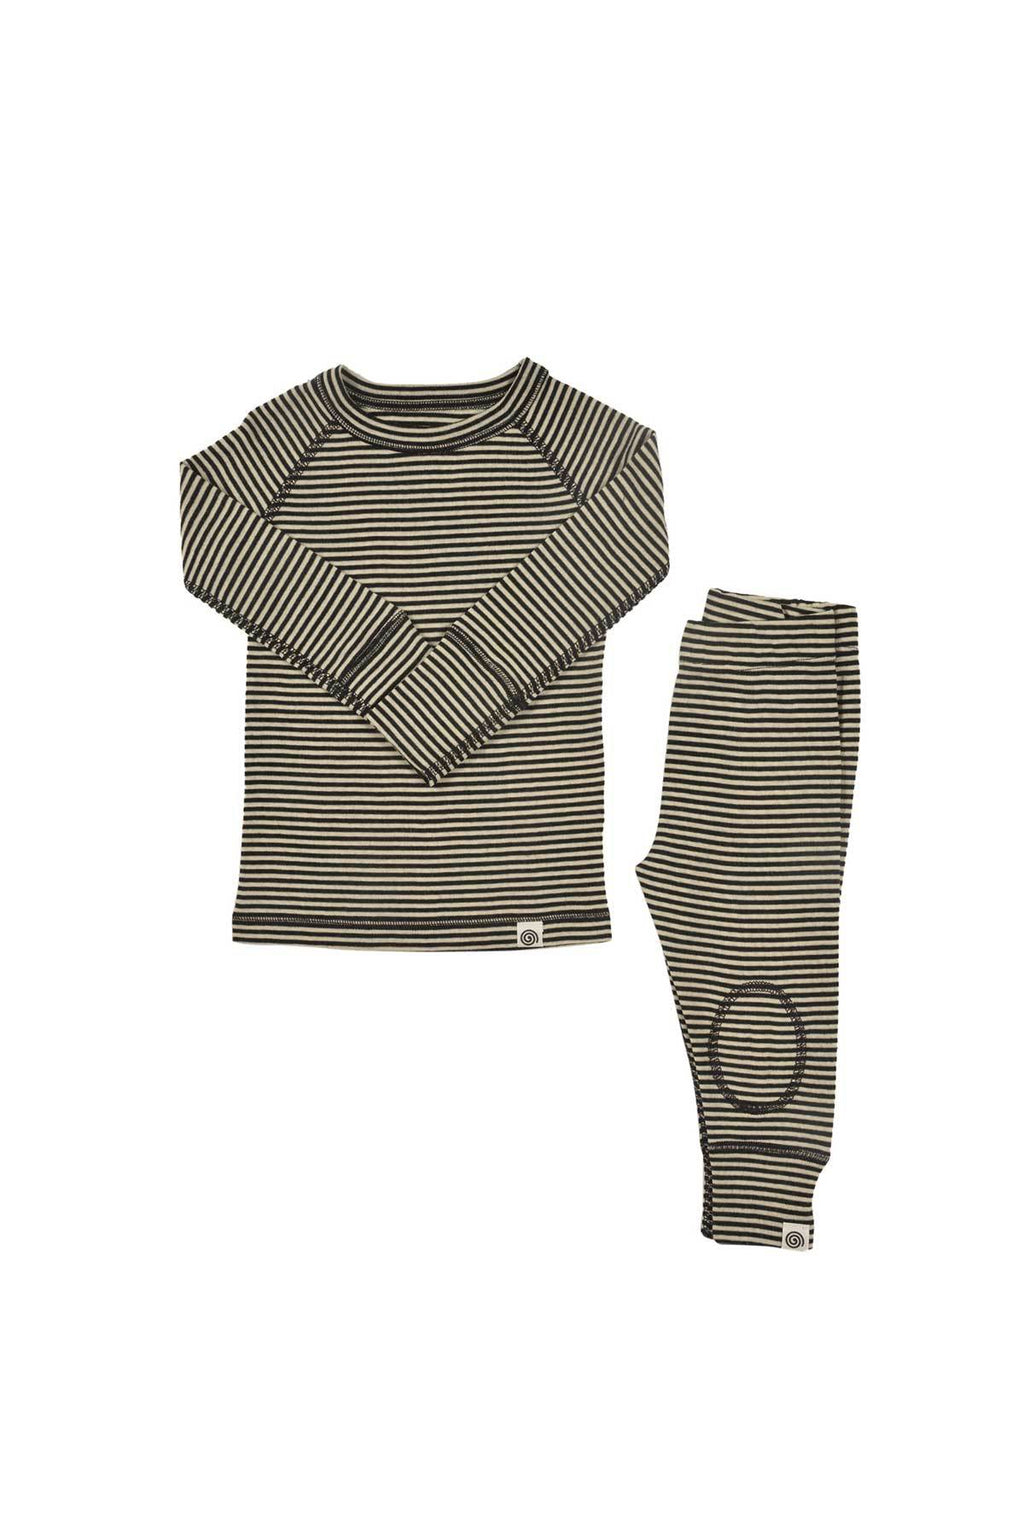 Merino Thermals Set- Black and White